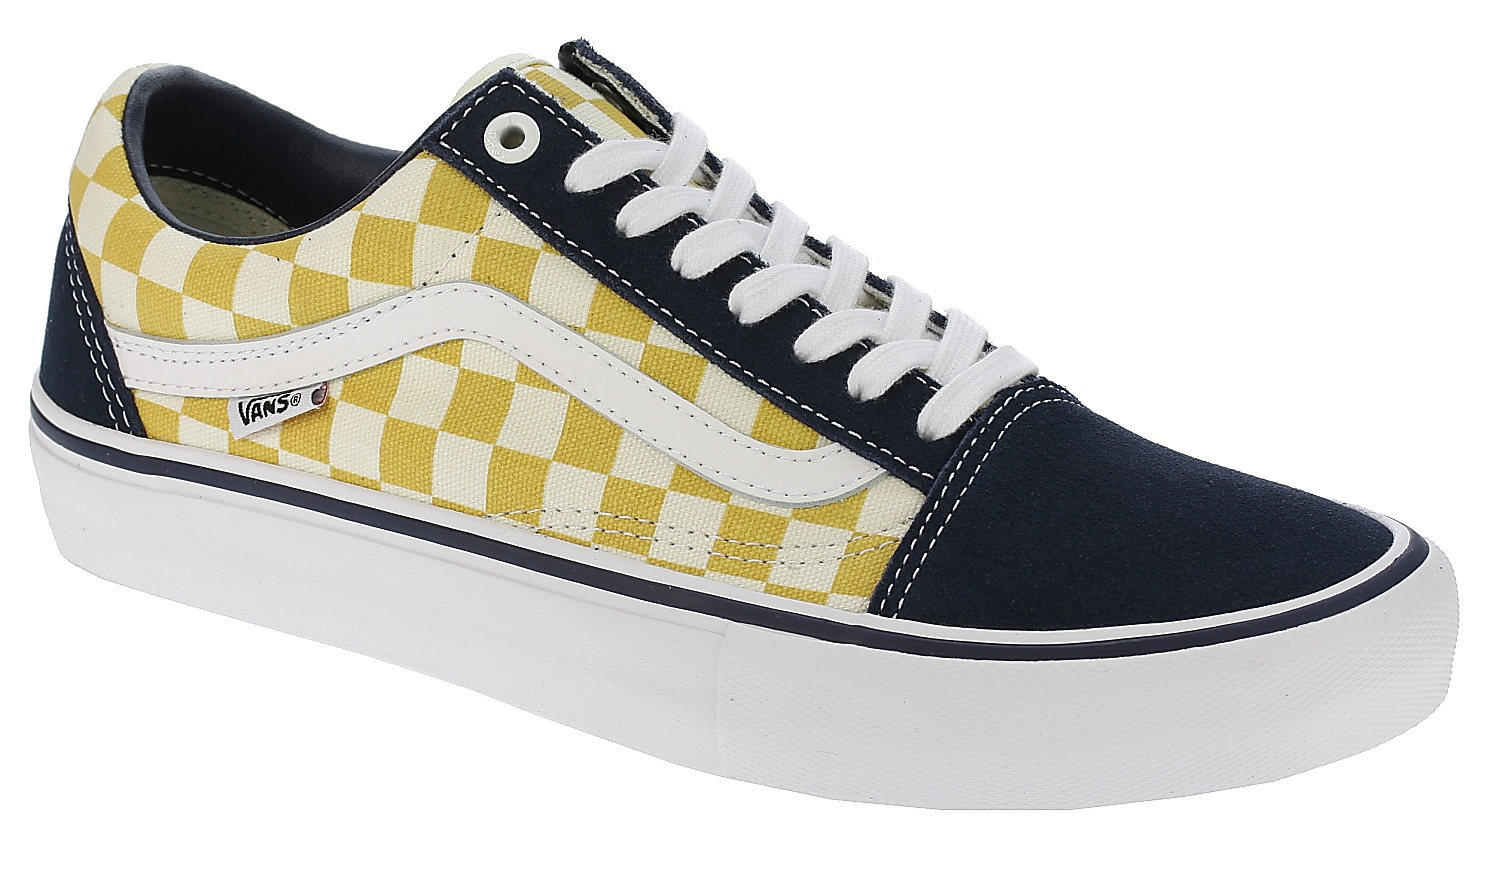 c14226255e24a1 shoes Vans Old Skool Pro - Checkerboard Dress Blues Ochre - Snowboard shop